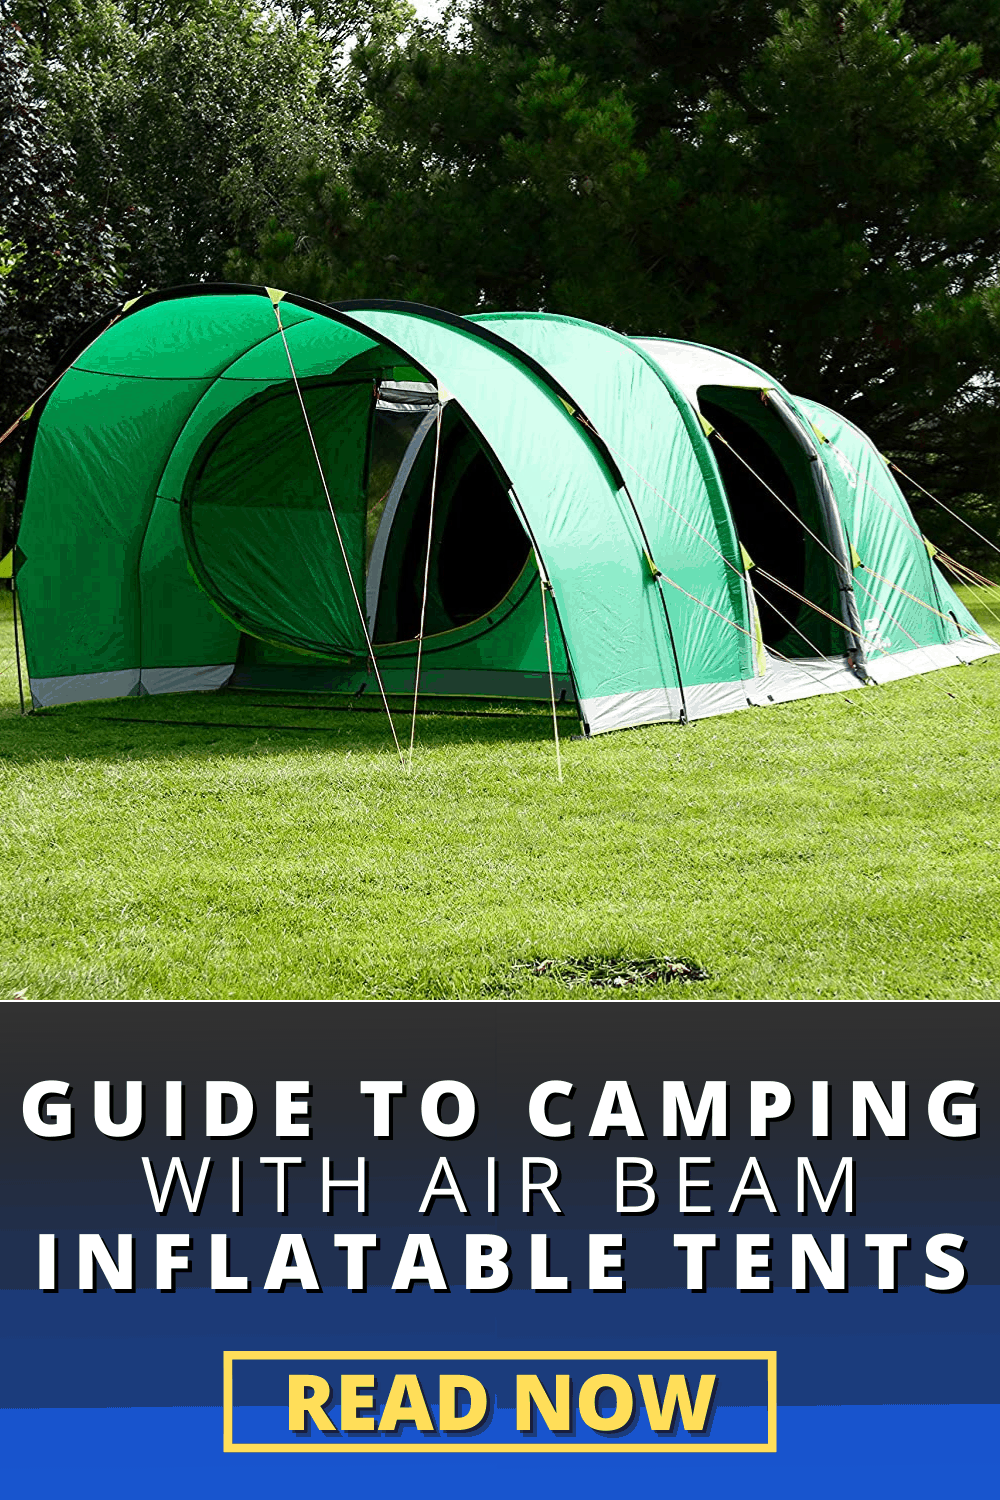 Guide to Camping with Air Beam Inflatable Tents